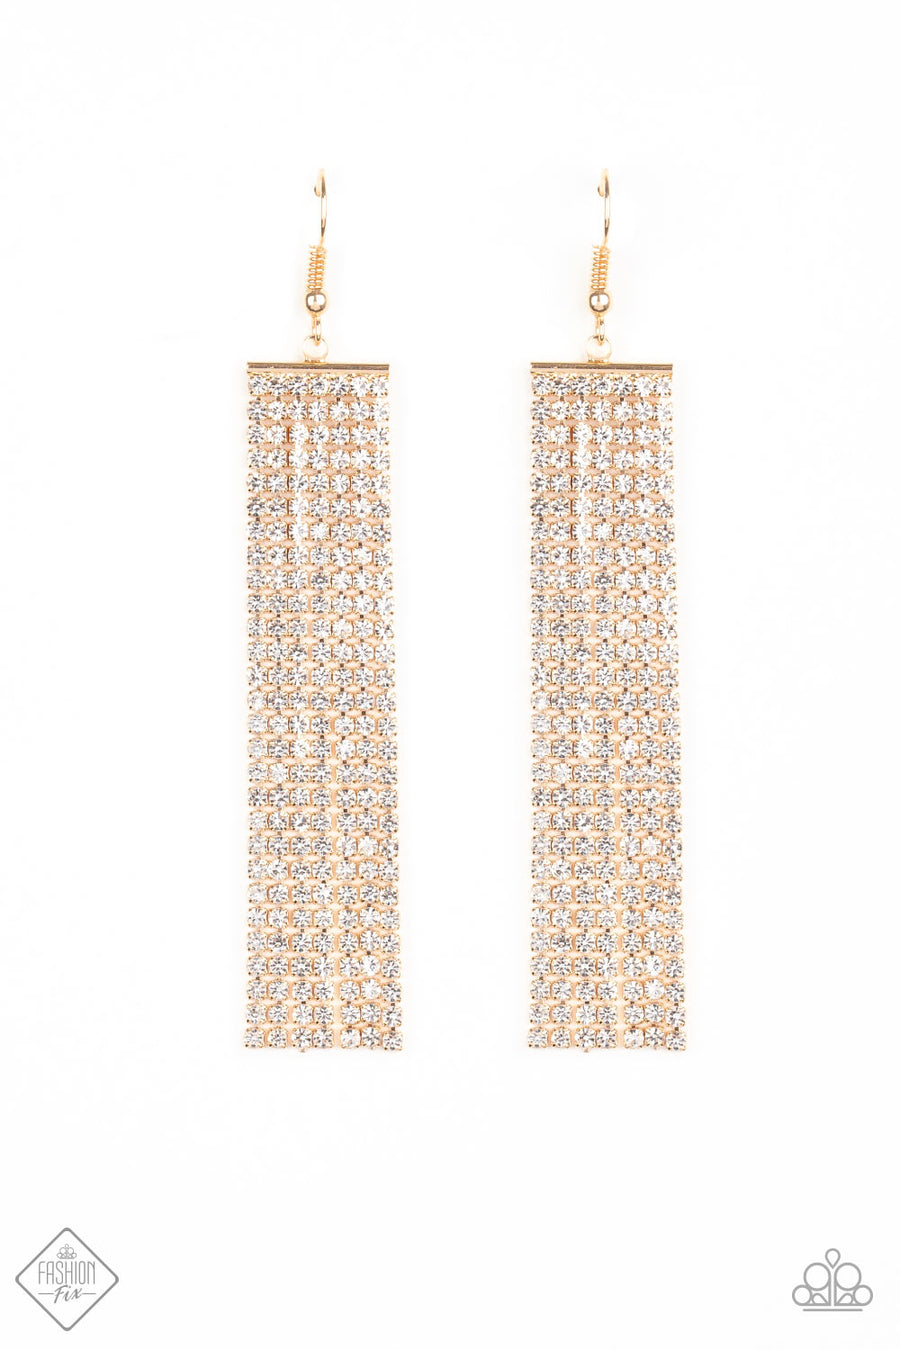 Top-Down Shimmer - Gold Earrings